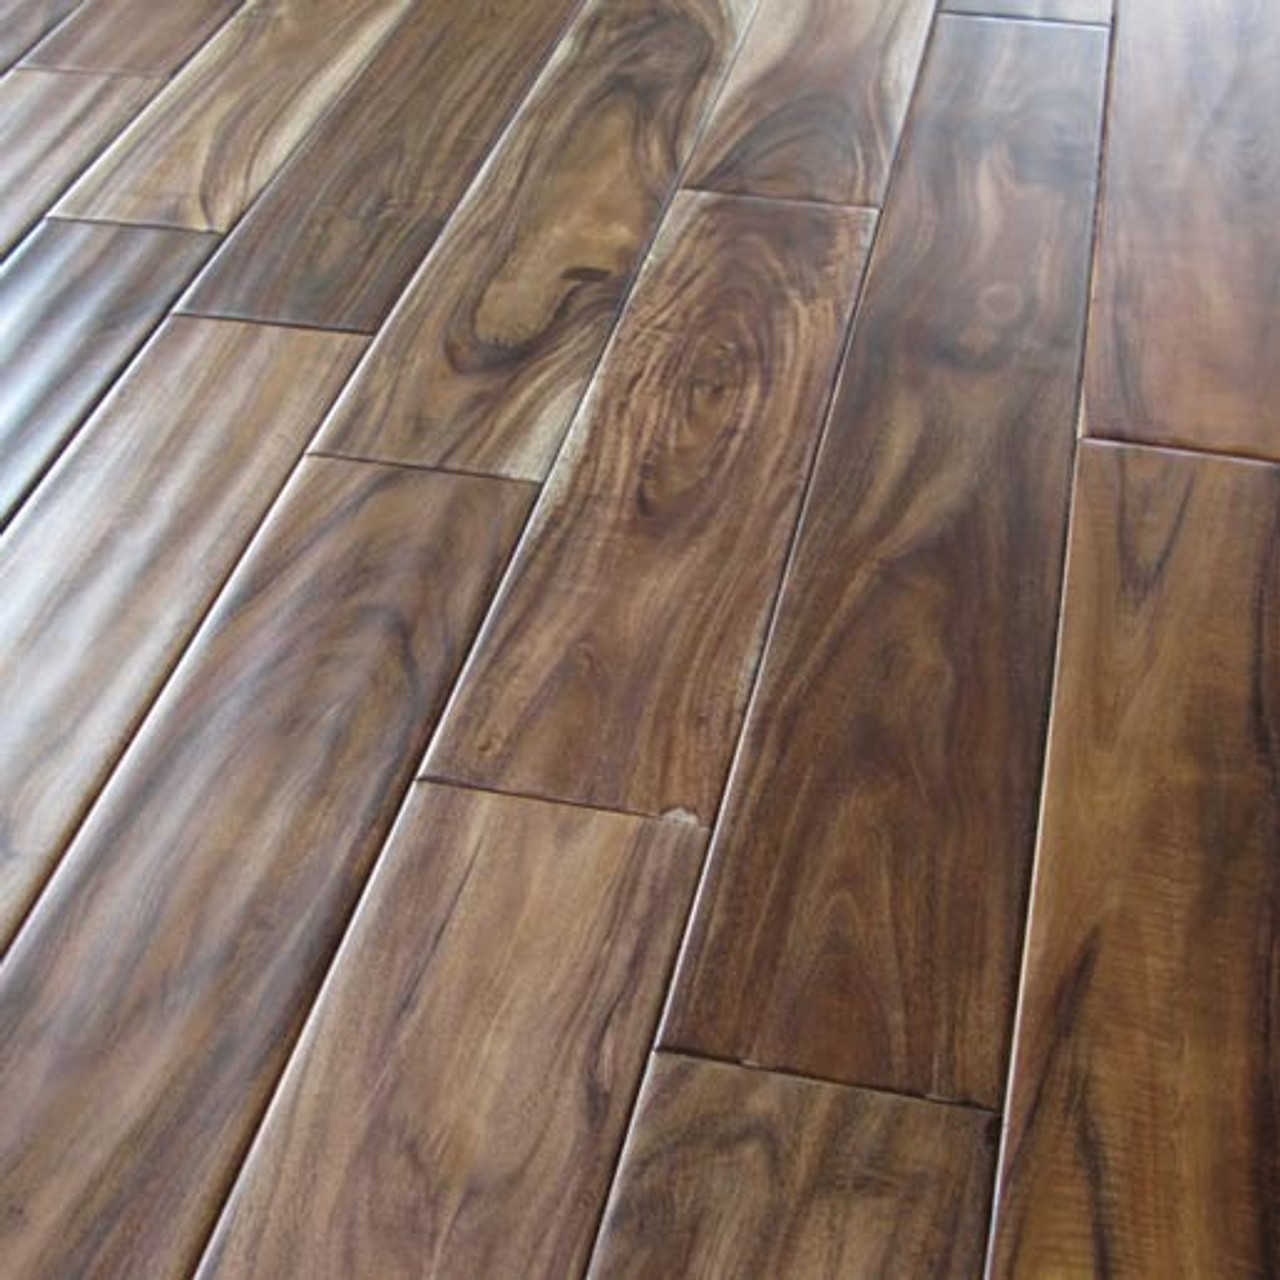 Acacia Collection Natural Engineered Handscraped Dansk Hardwood Flooring - Hardwood Flooring - Dansk Hardwood Flooring--Portland Wood Floors